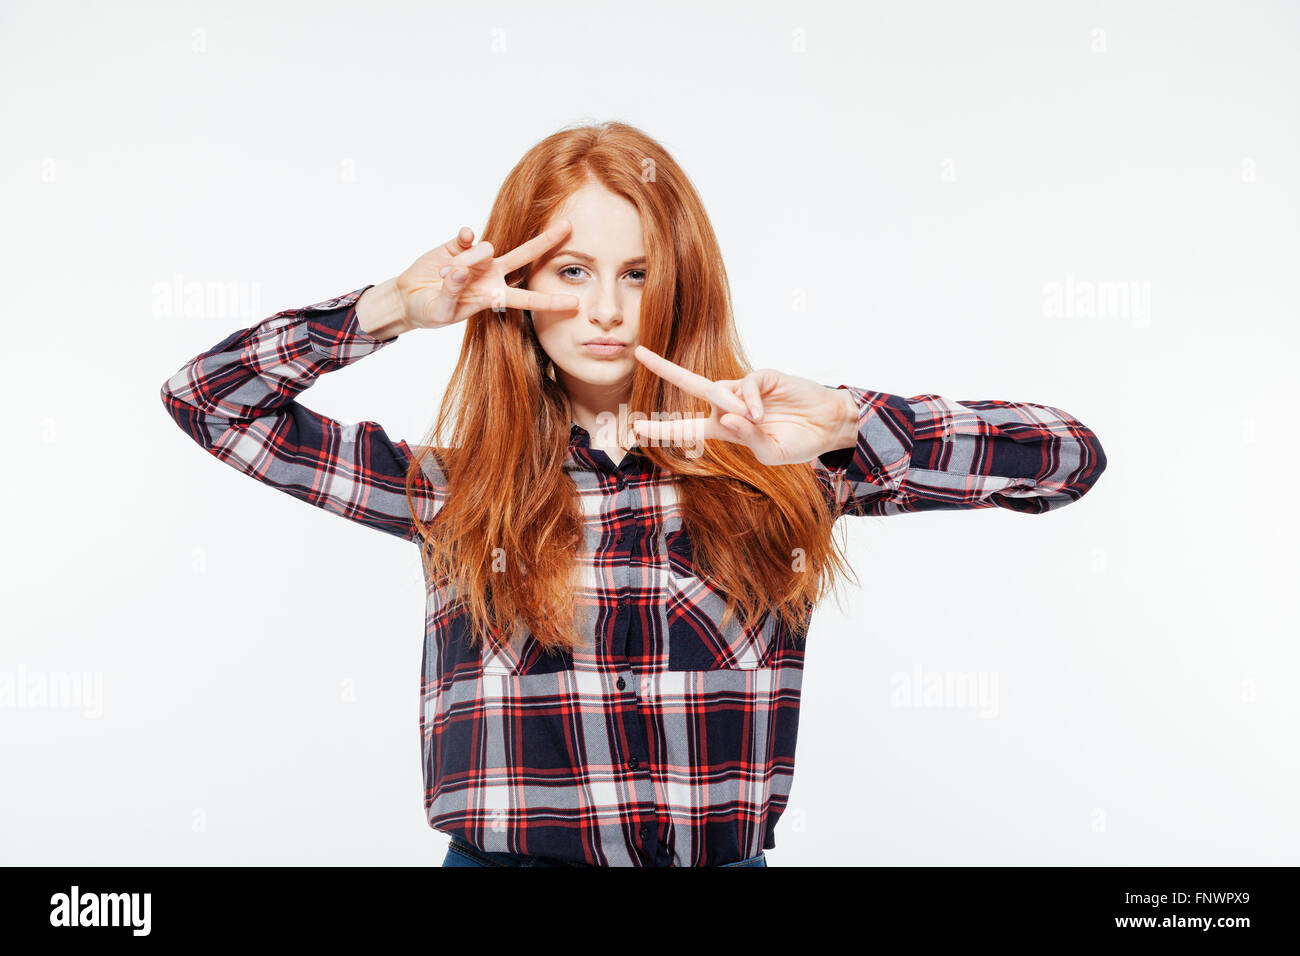 With you redhead woman posing